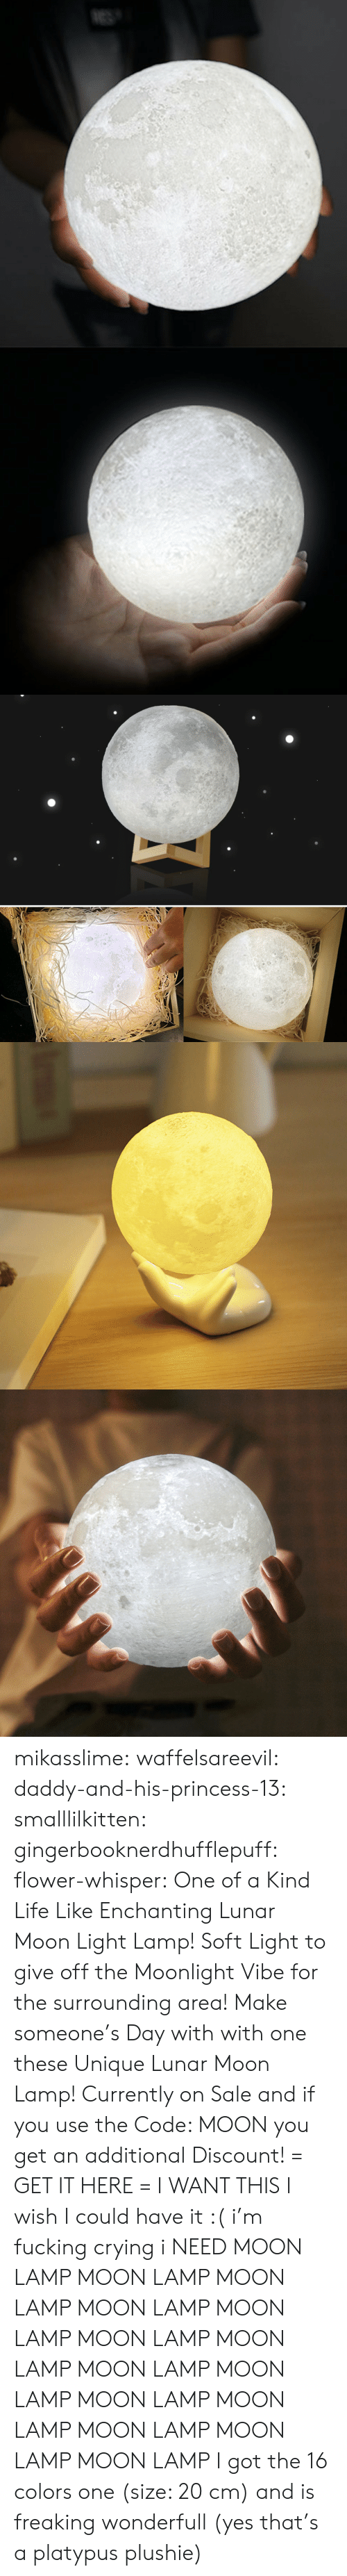 Moonlight: mikasslime: waffelsareevil:   daddy-and-his-princess-13:  smalllilkitten:   gingerbooknerdhufflepuff:   flower-whisper:  One of a Kind Life Like Enchanting Lunar Moon Light Lamp! Soft Light to give off the Moonlight Vibe for the surrounding area! Make someone's Day with with one these Unique Lunar Moon Lamp! Currently on Sale and if you use the Code: MOON you get an additional Discount! = GET IT HERE =   I WANT THIS   I wish I could have it :(   i'm fucking crying i NEED   MOON LAMP MOON LAMP MOON LAMP MOON LAMP MOON LAMP MOON LAMP MOON LAMP MOON LAMP MOON LAMP MOON LAMP MOON LAMP MOON LAMP MOON LAMP MOON LAMP     I got the 16 colors one (size: 20 cm) and is freaking wonderfull (yes that's a platypus plushie)